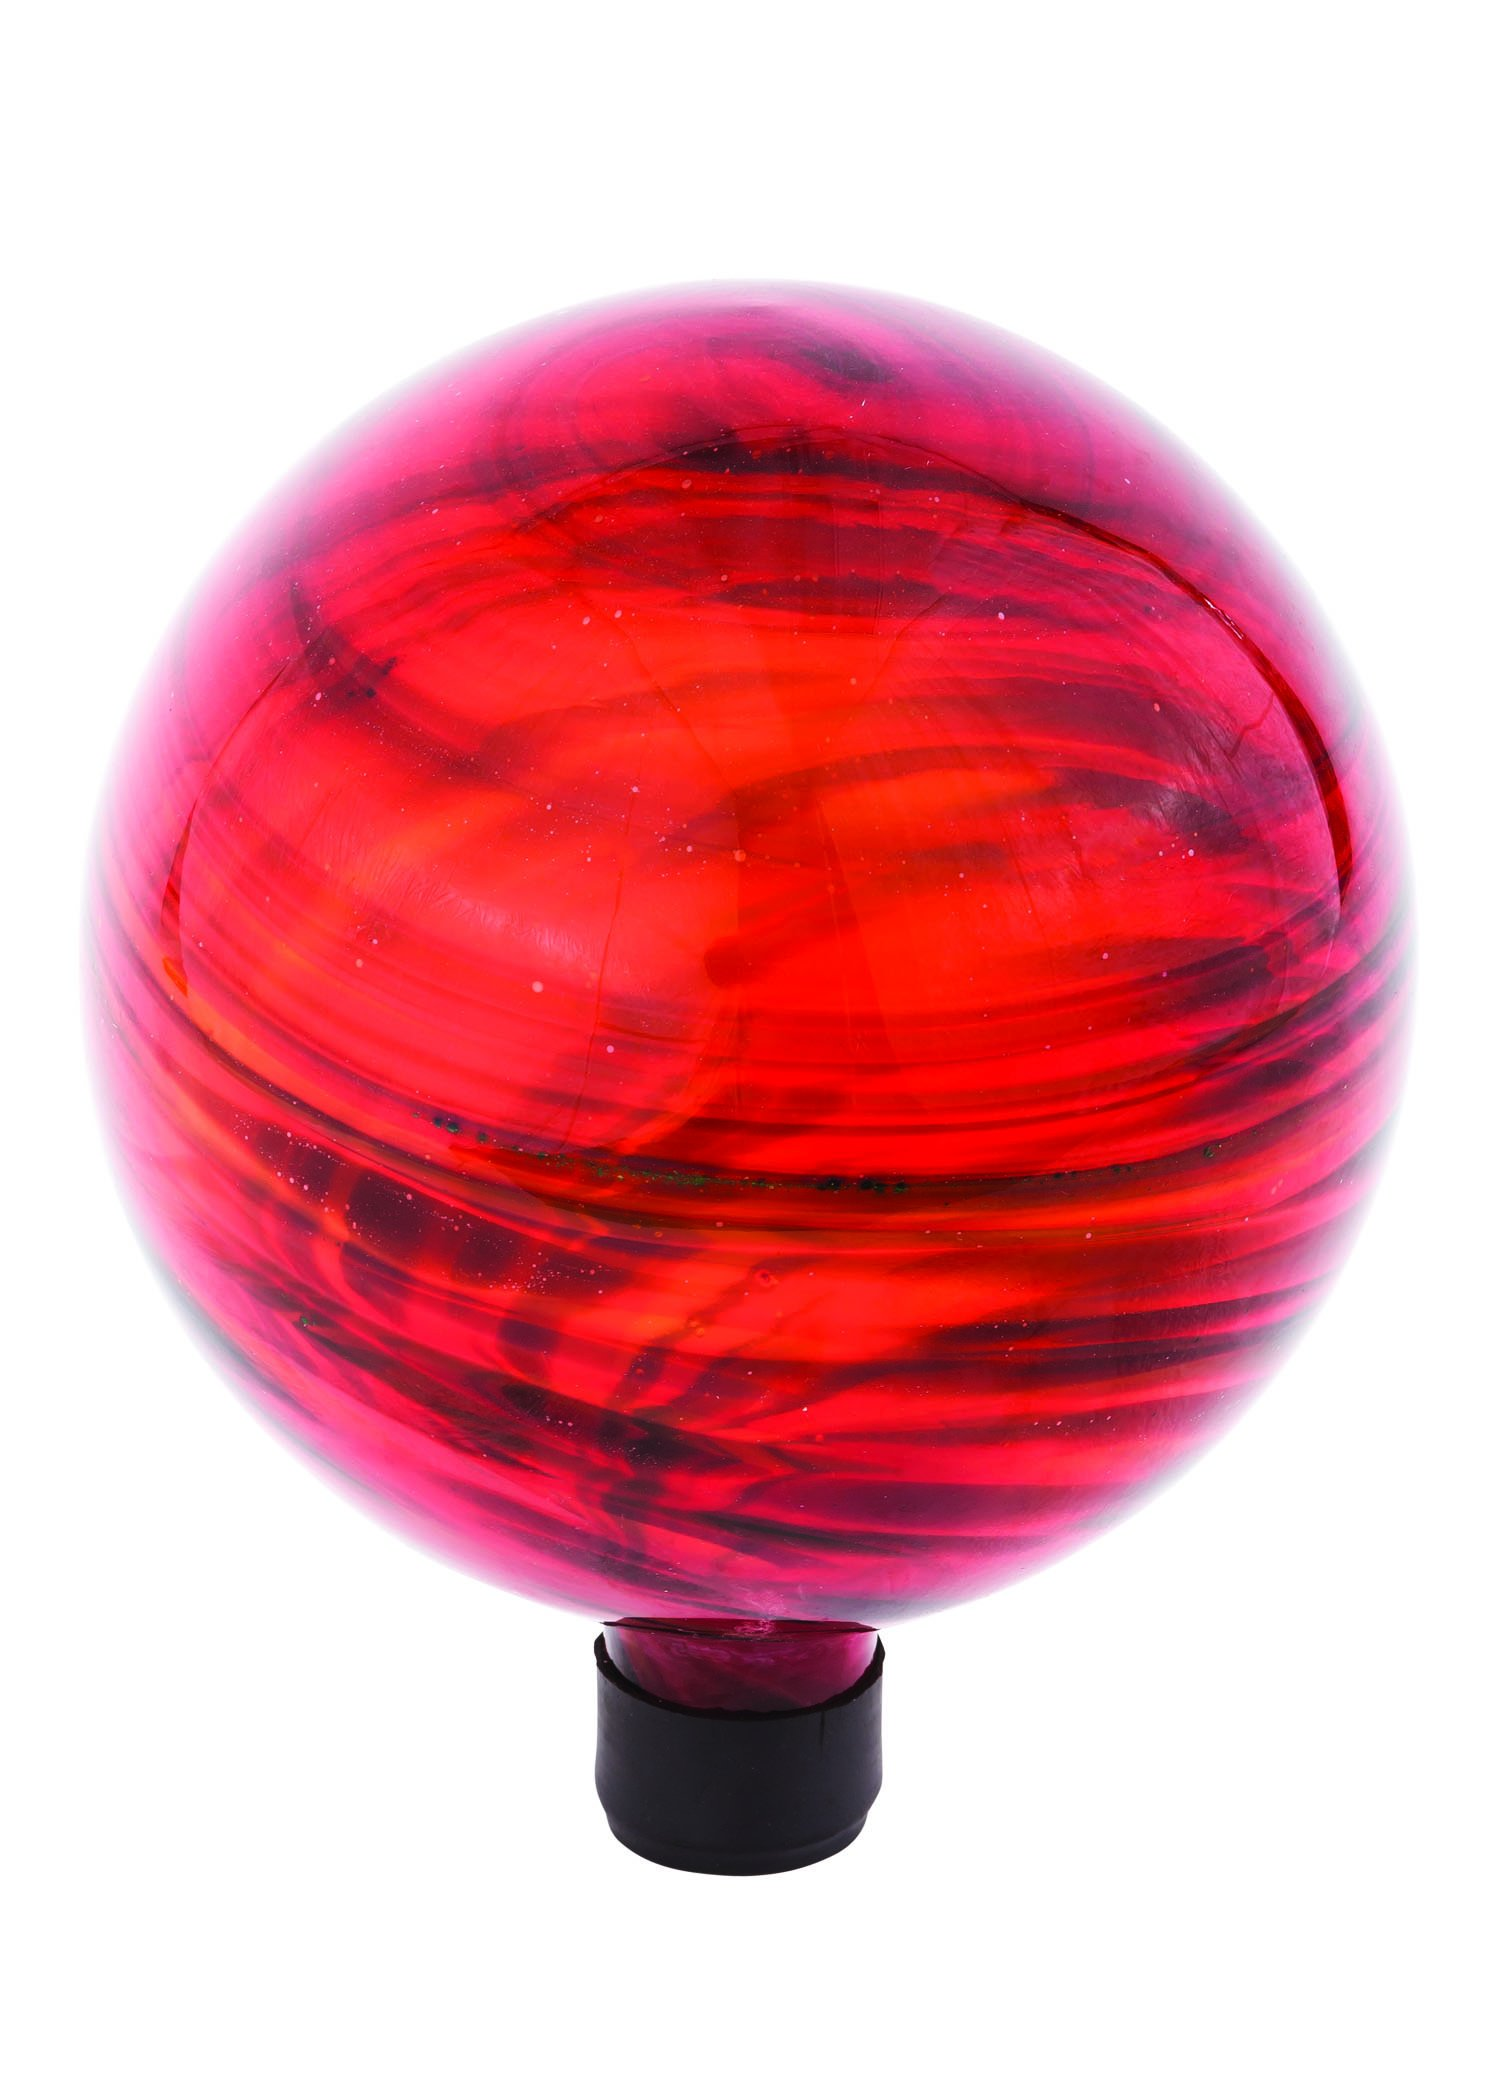 Russco III GD137180 Glass Gazing Ball, 10'', Red Swirl